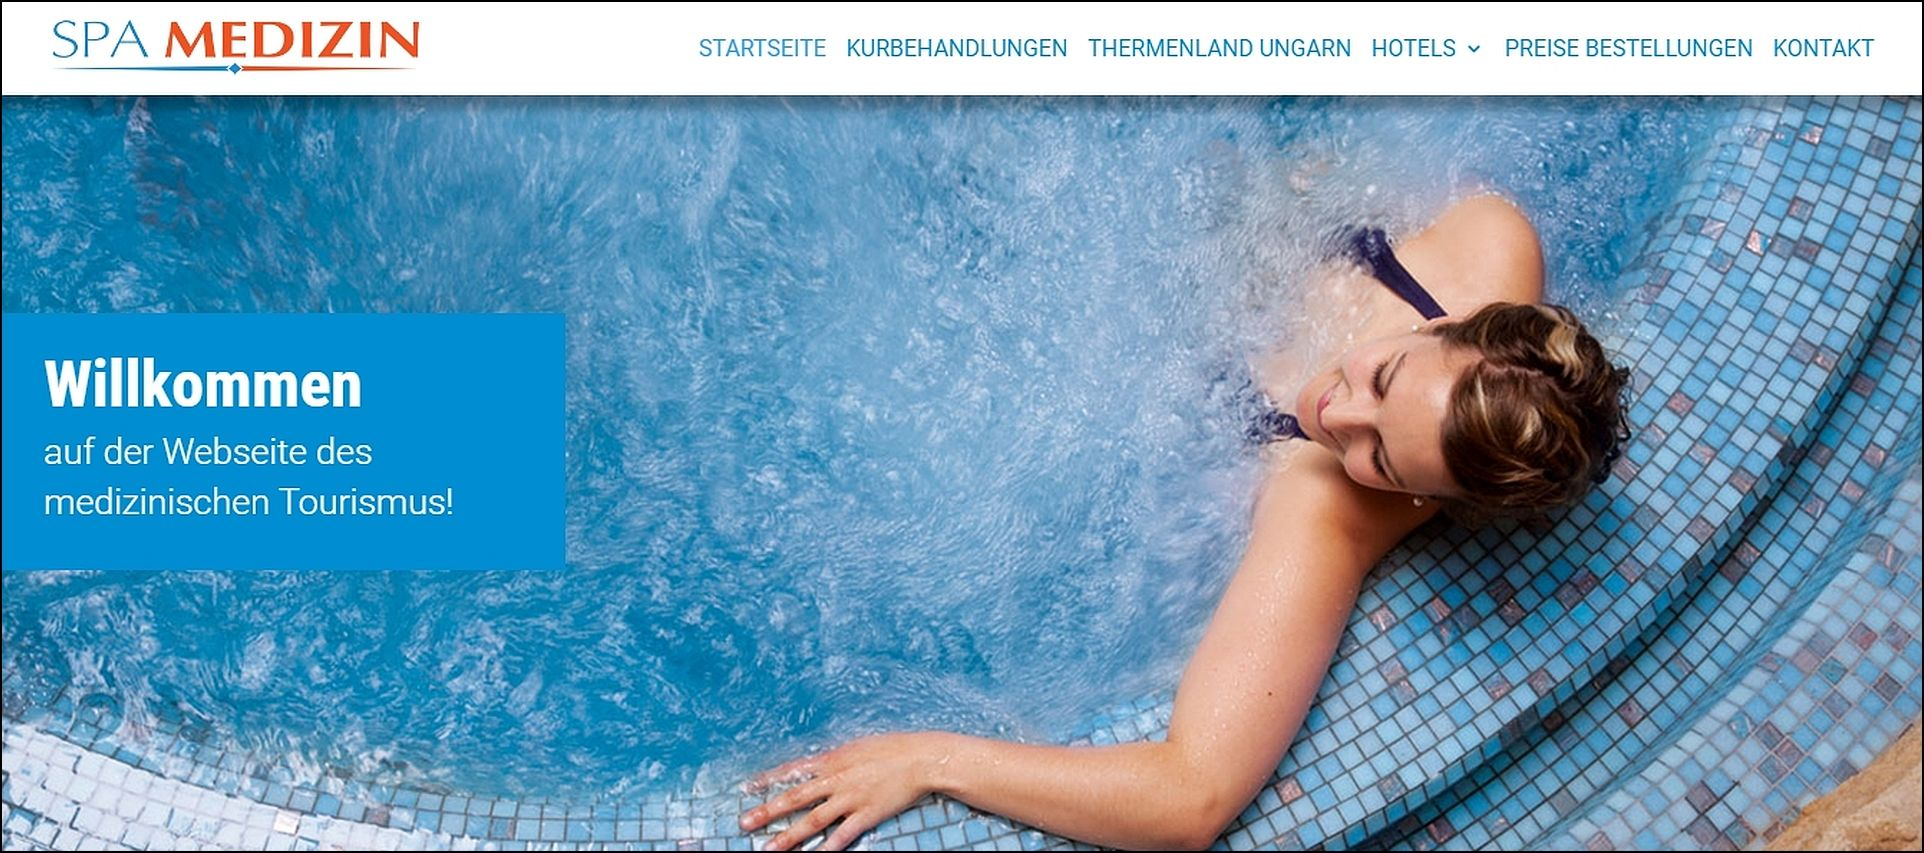 Spa-Medizin website